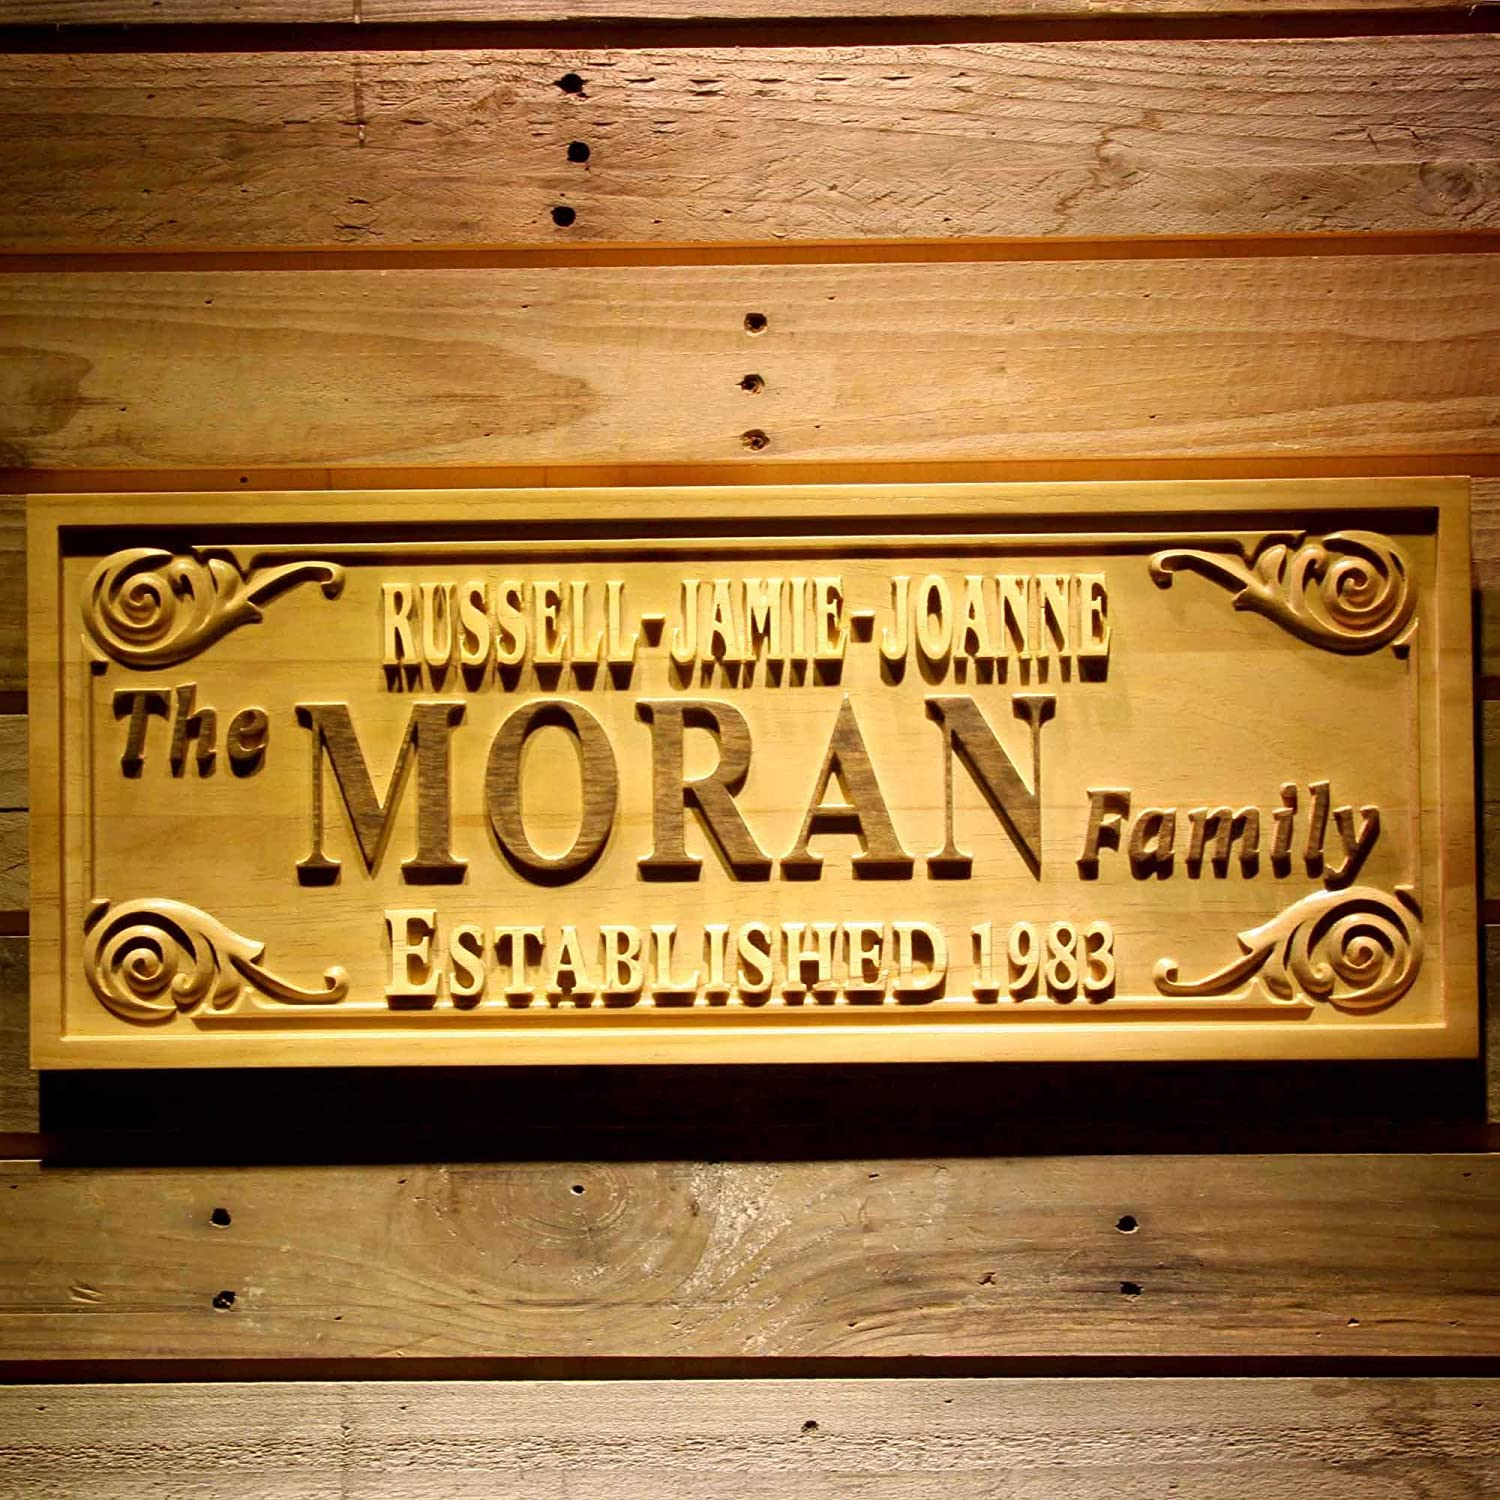 wpa0339 Family Members Name Last Name Personalized Housewarming Newborn Baby Gifts Wood Engraved Wooden Sign - Medium 18.25 x 7.25 ADV PRO